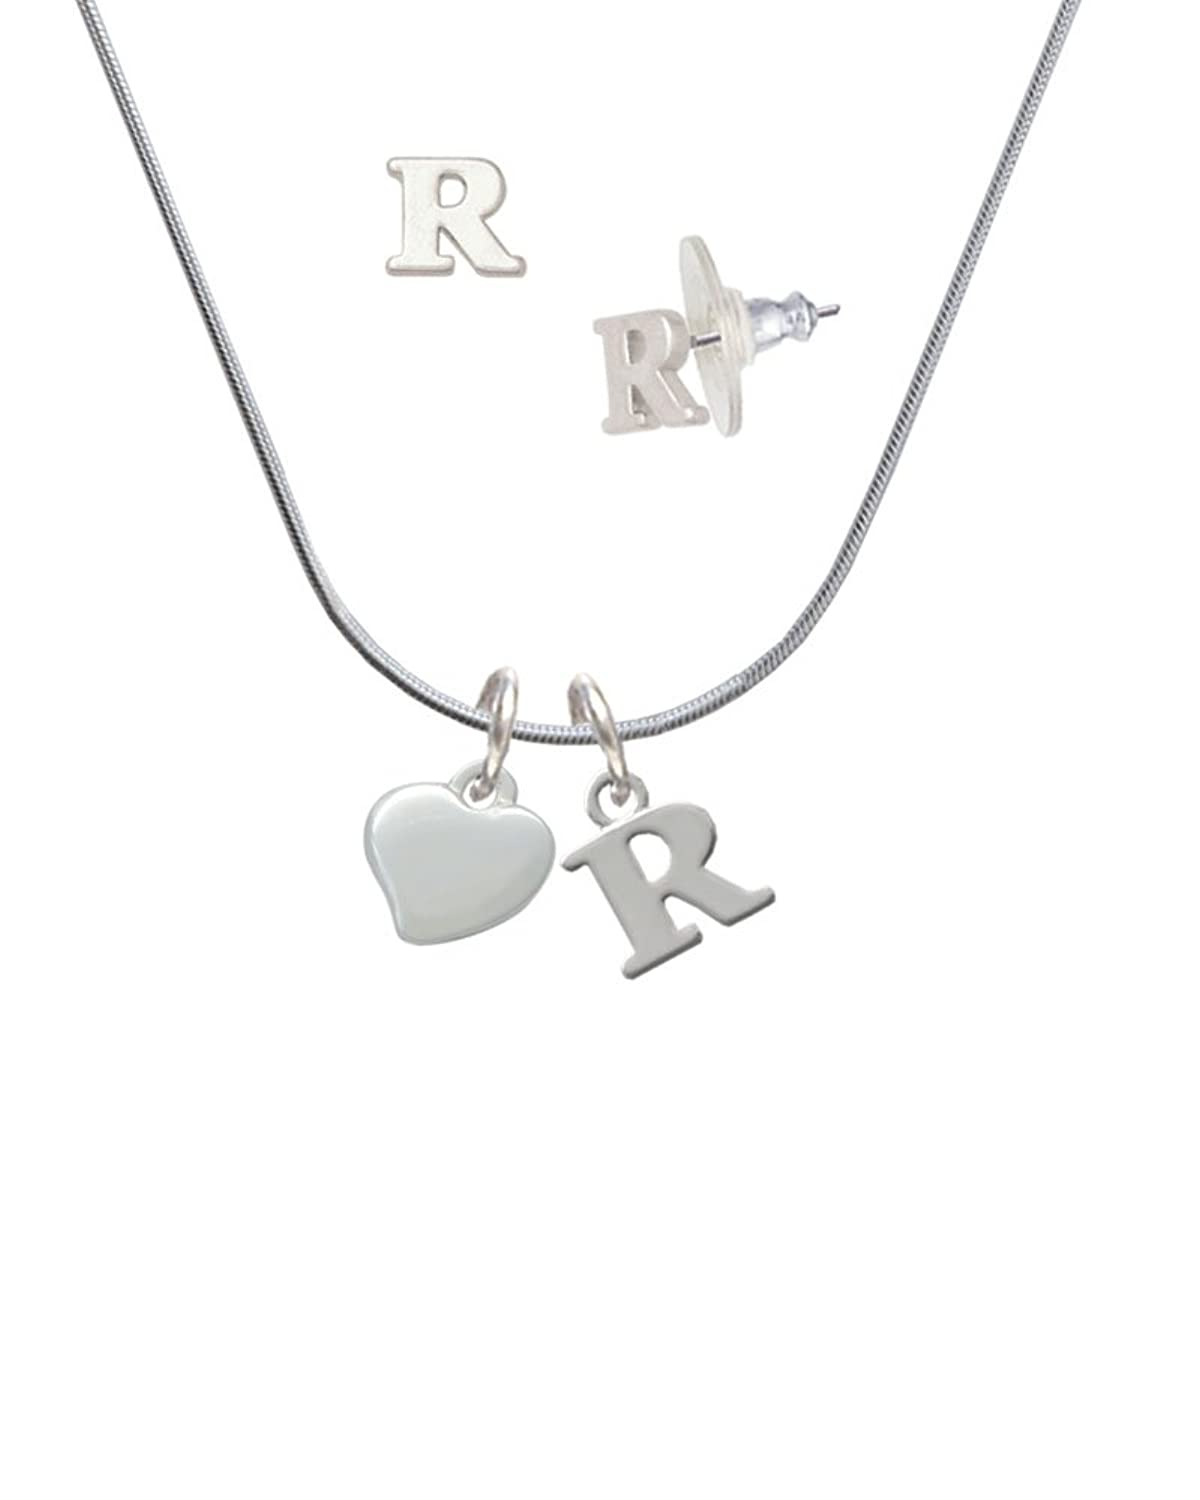 Small 2-D Puffy Heart - R Initial Charm Necklace and Stud Earrings Jewelry Set